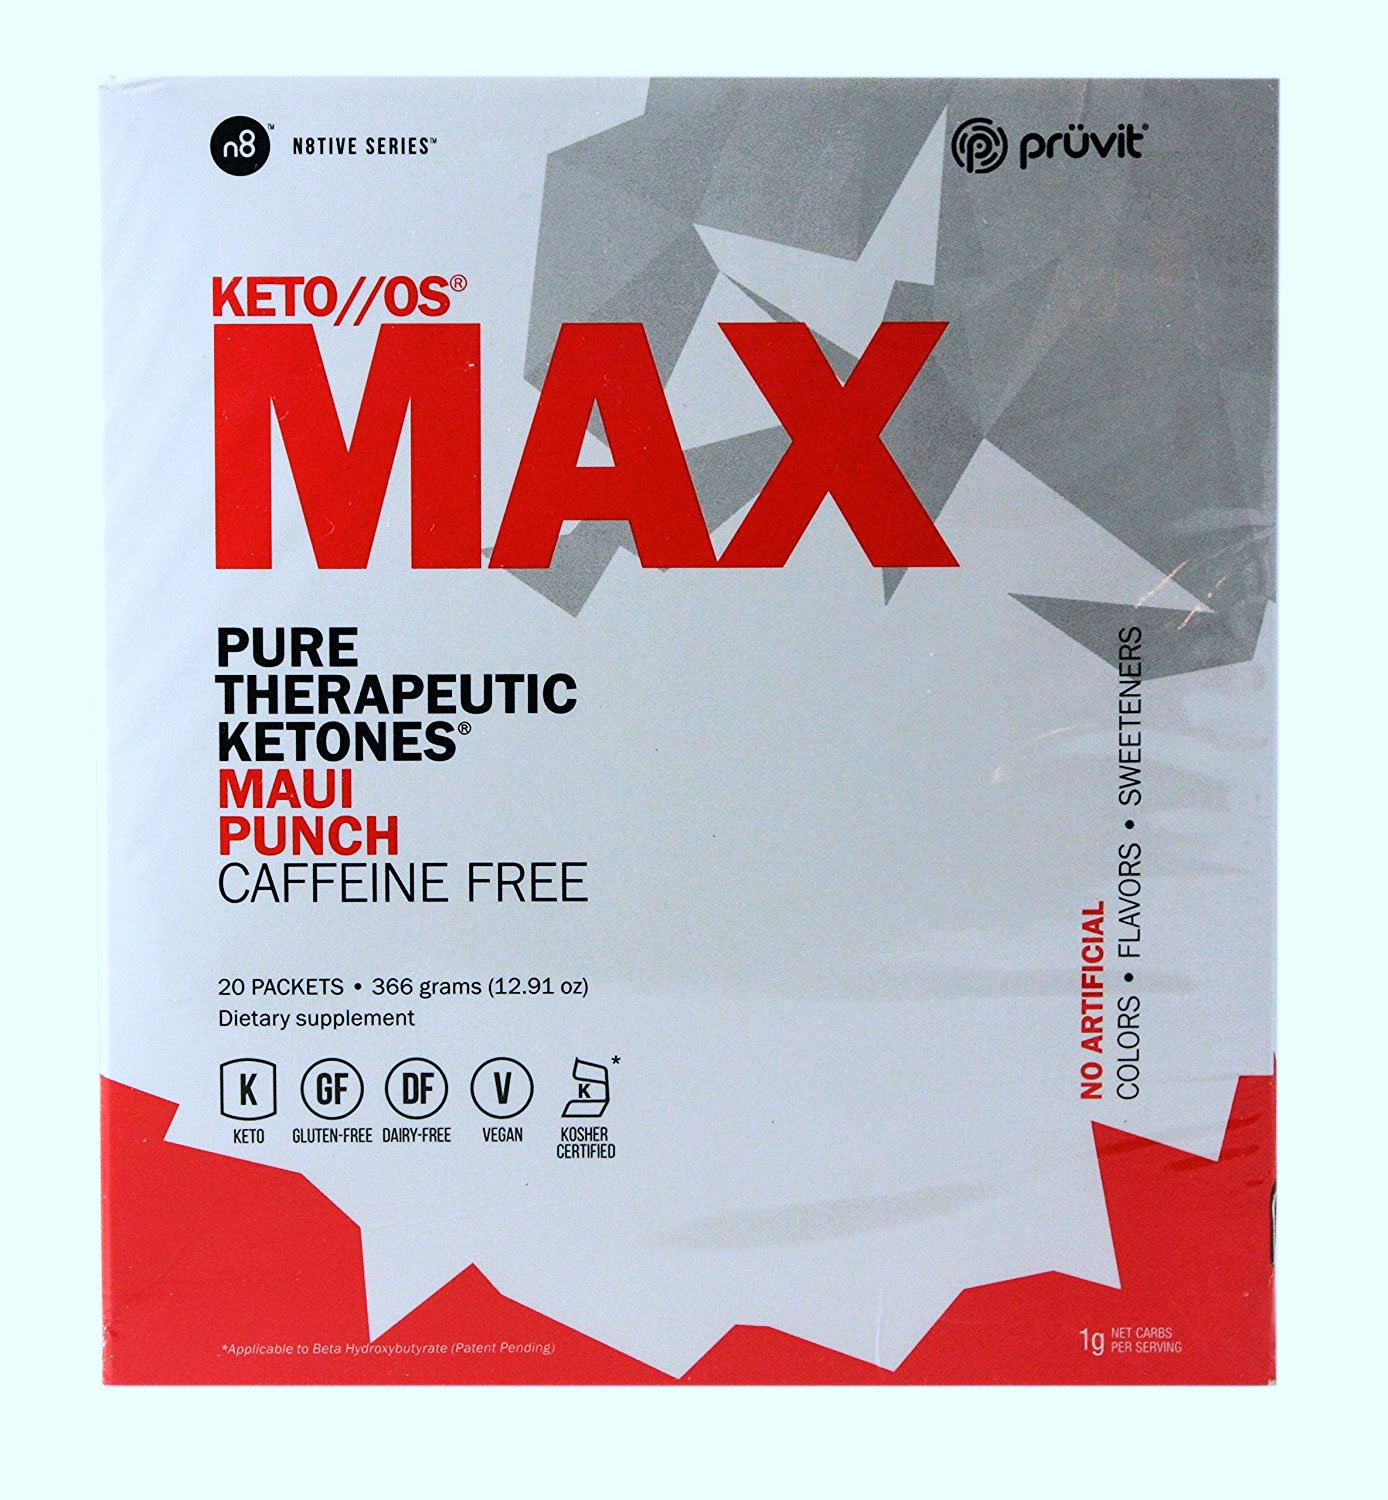 KETO//OS MAX Maui Punch No Caffeine, BHB Salts Ketogenic Supplement - Beta Hydroxybutyrates Exogenous Ketones for Fat Loss, Workout Energy Boost and Weight Management through Fast Ketosis, 20 Sachets